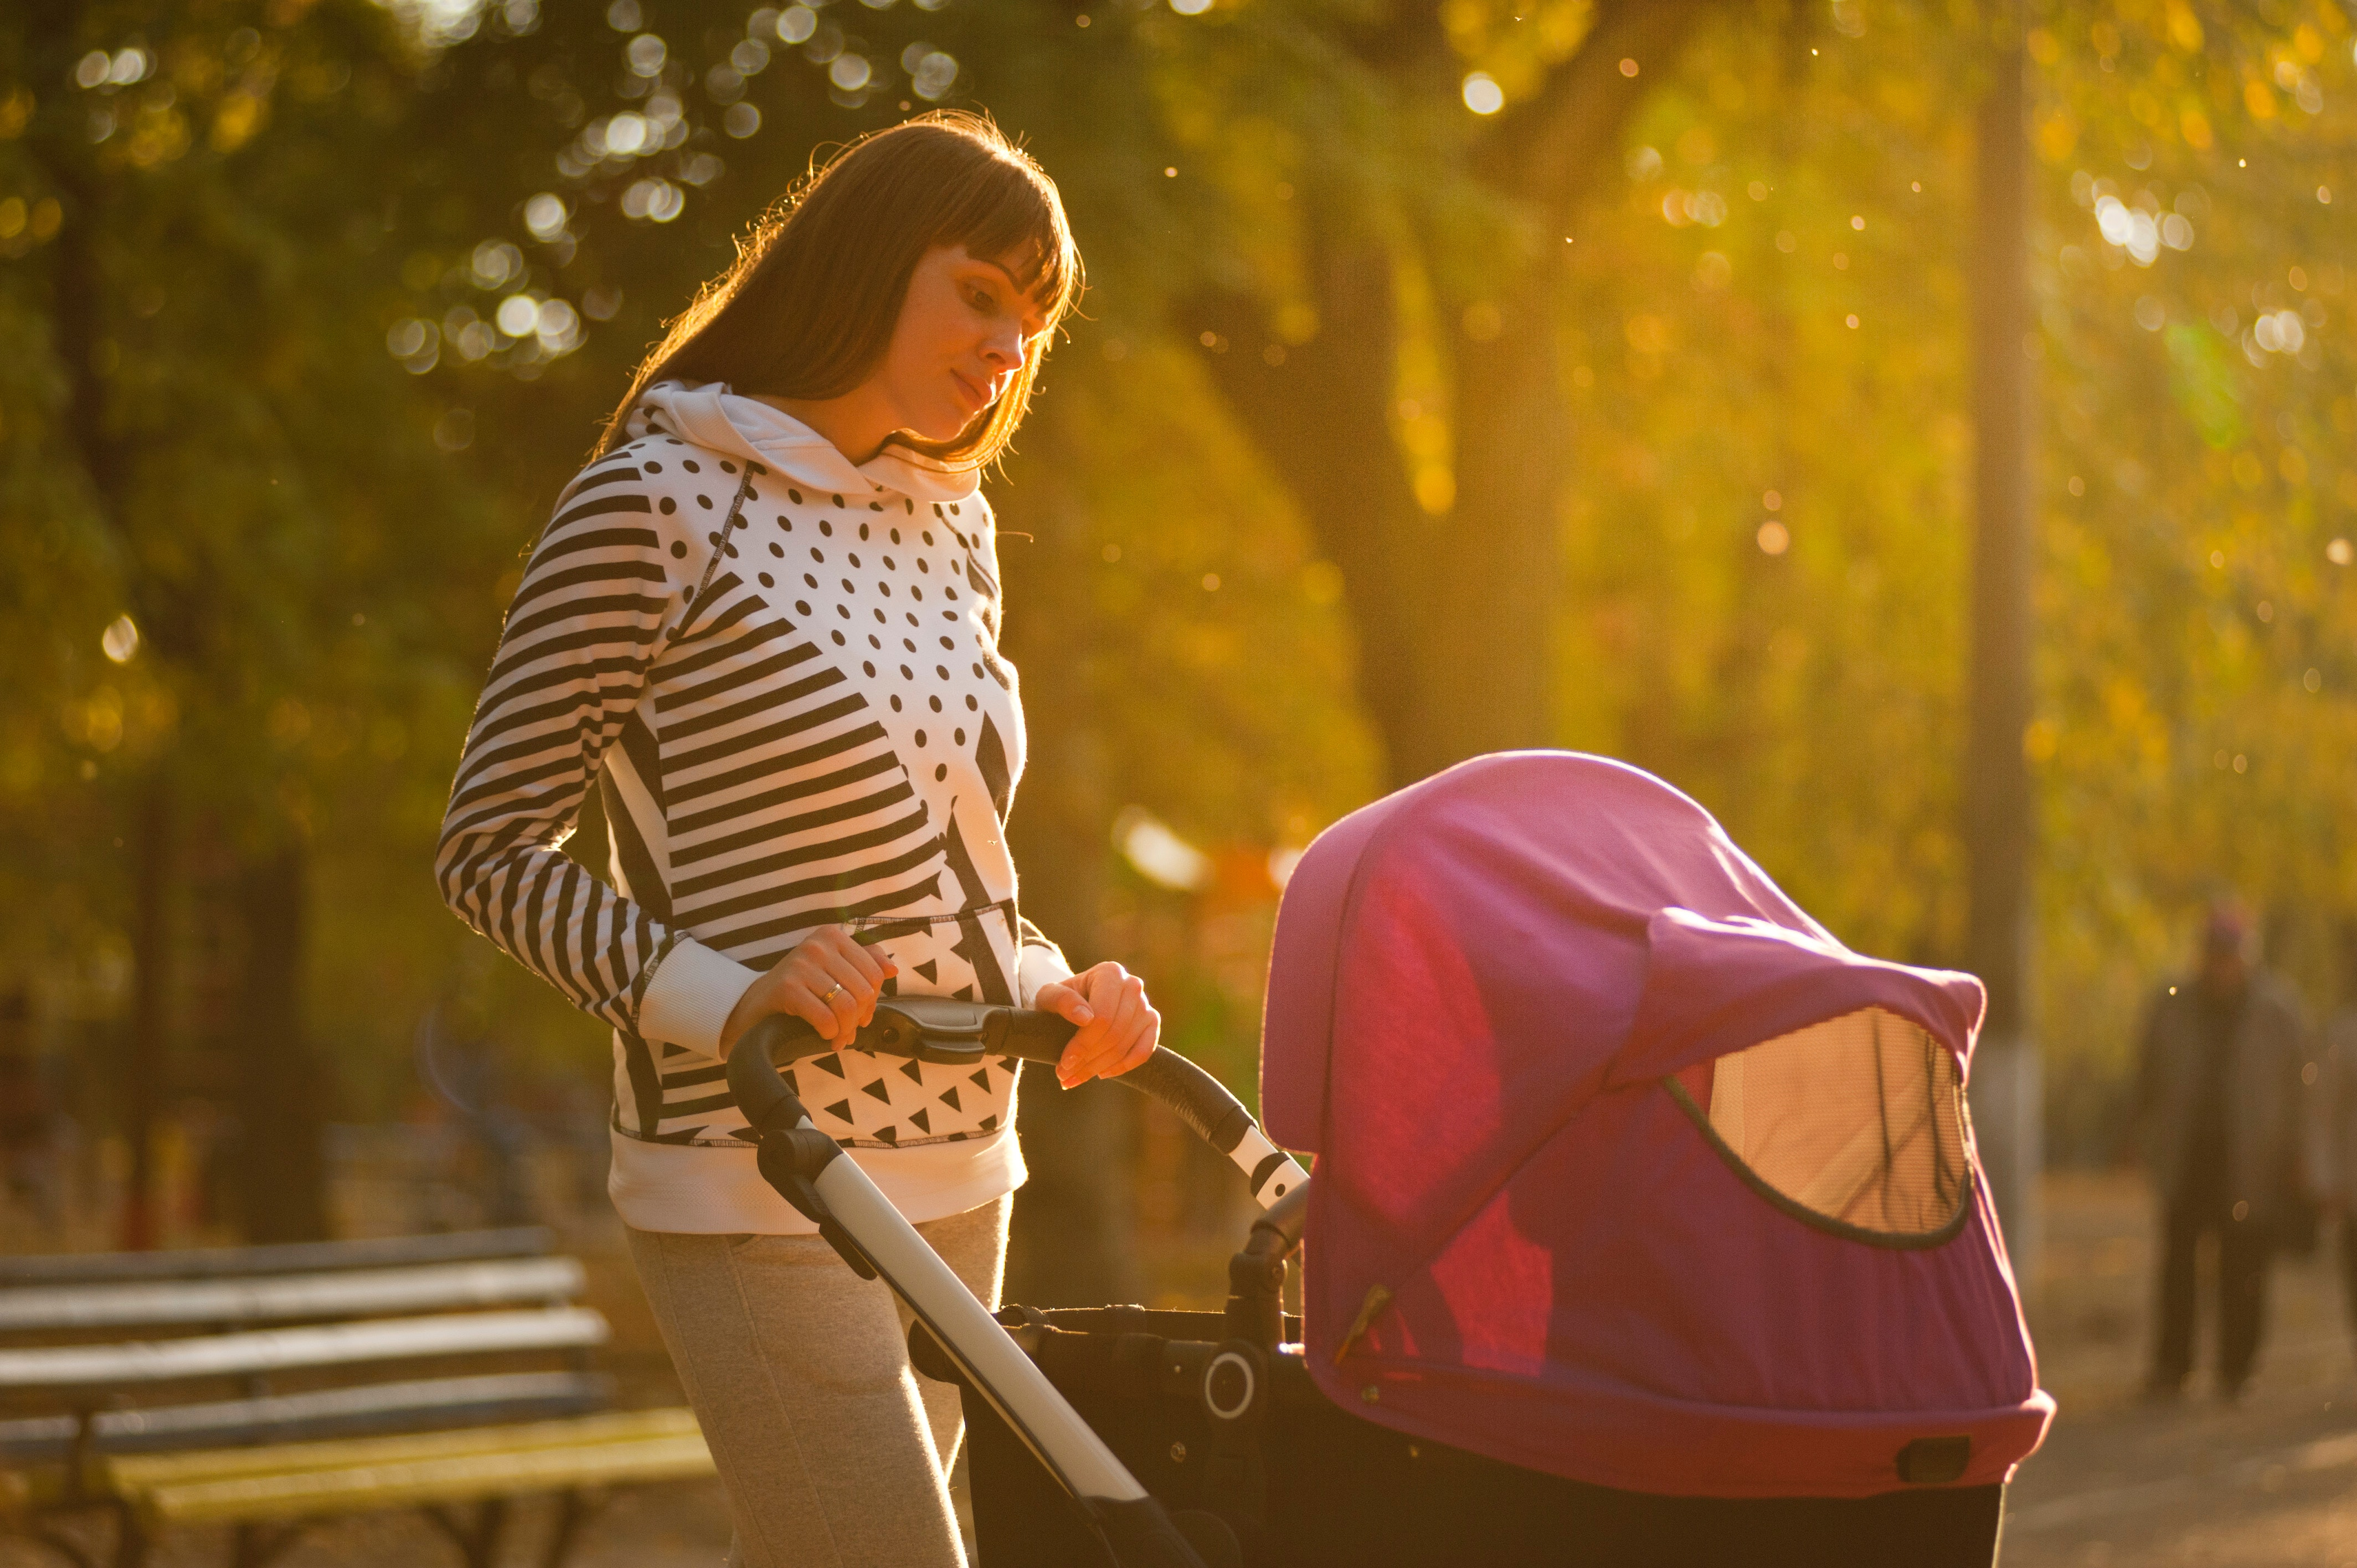 A stock photo of a woman with a buggy looking onsite for a post about postnatal depression, motherhood and mayhem.